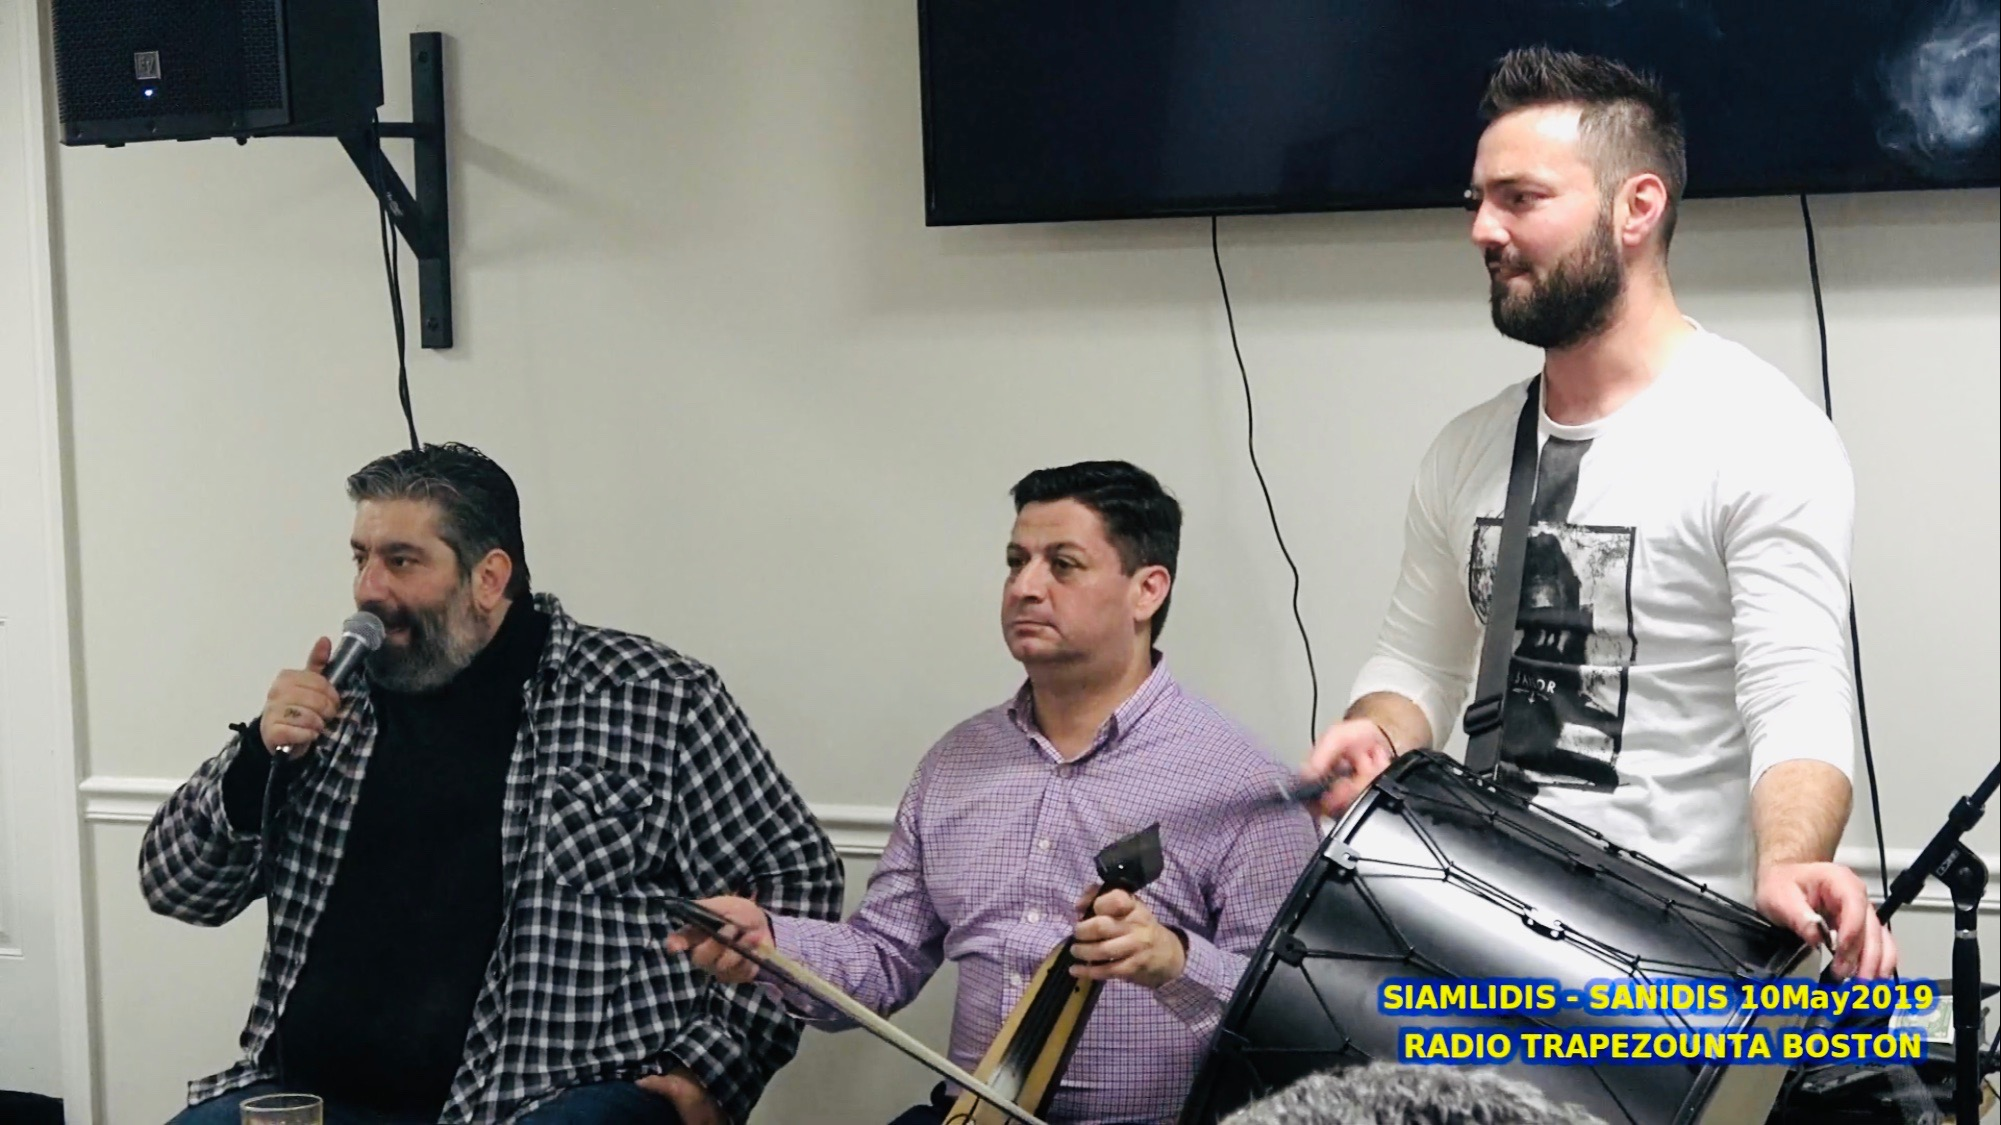 Giorgos Siamlidis – Giannis Sanidis | Pontiaki Estia Boston 10May2019